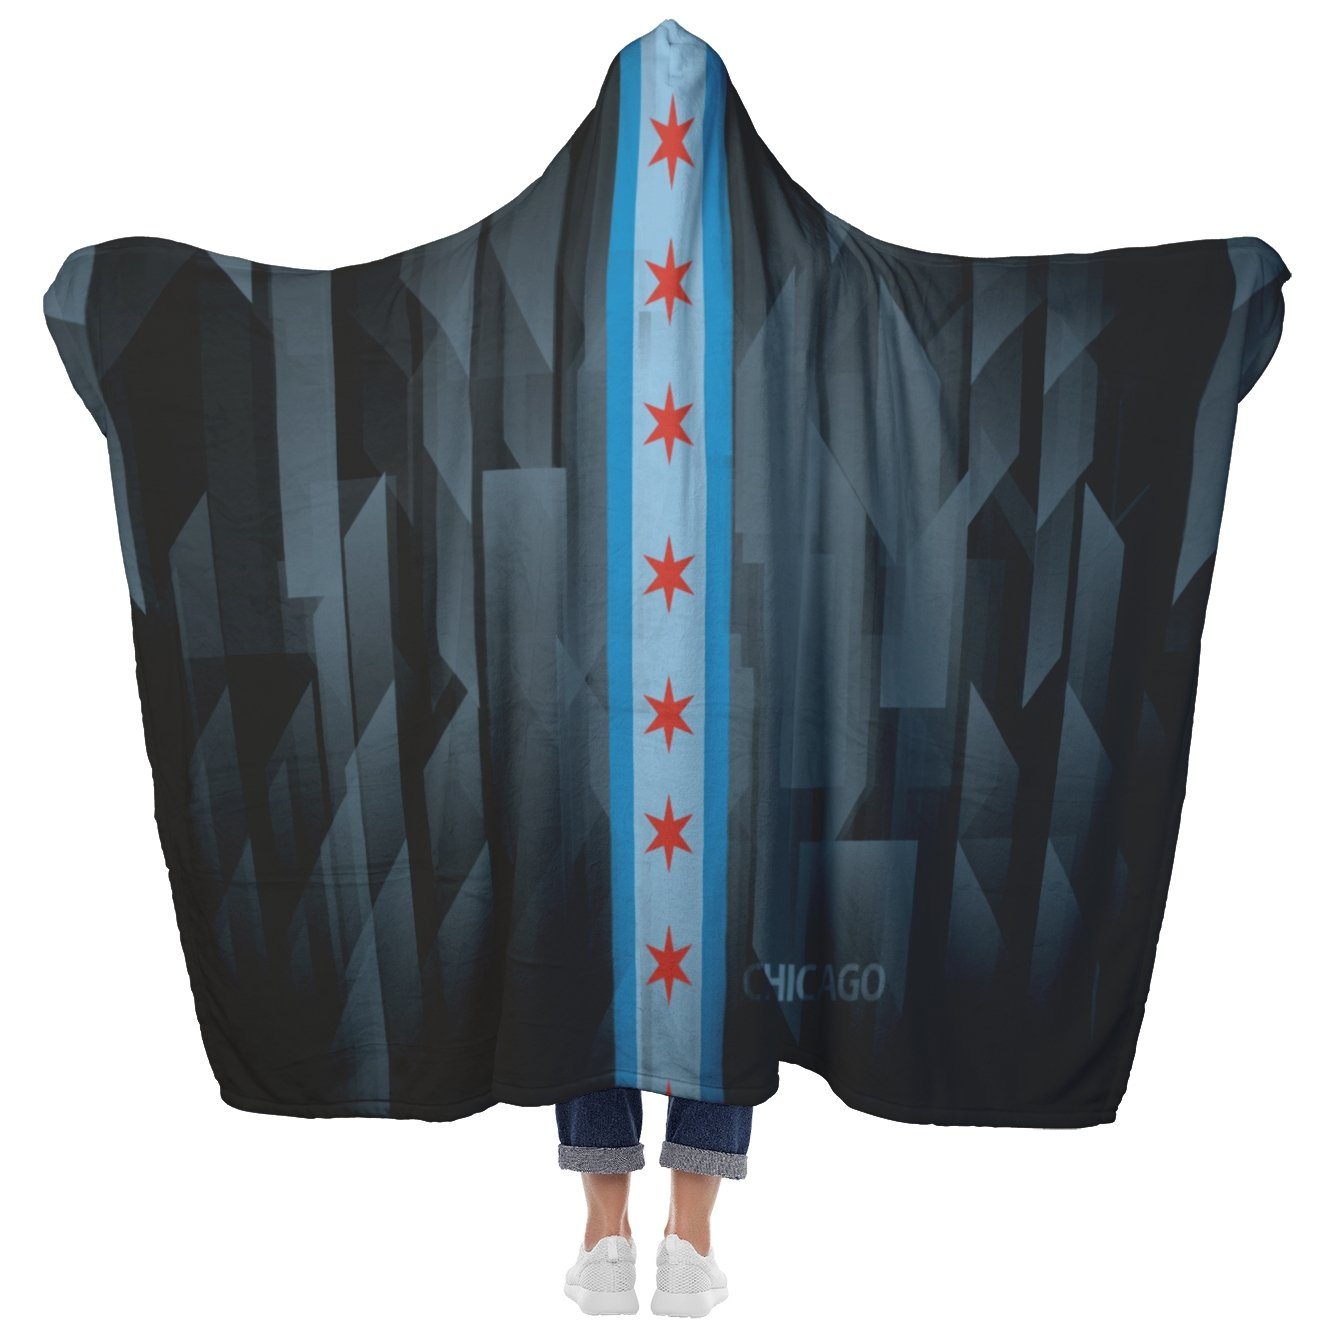 Chicago Reflections - Hooded Blanket - My E Three